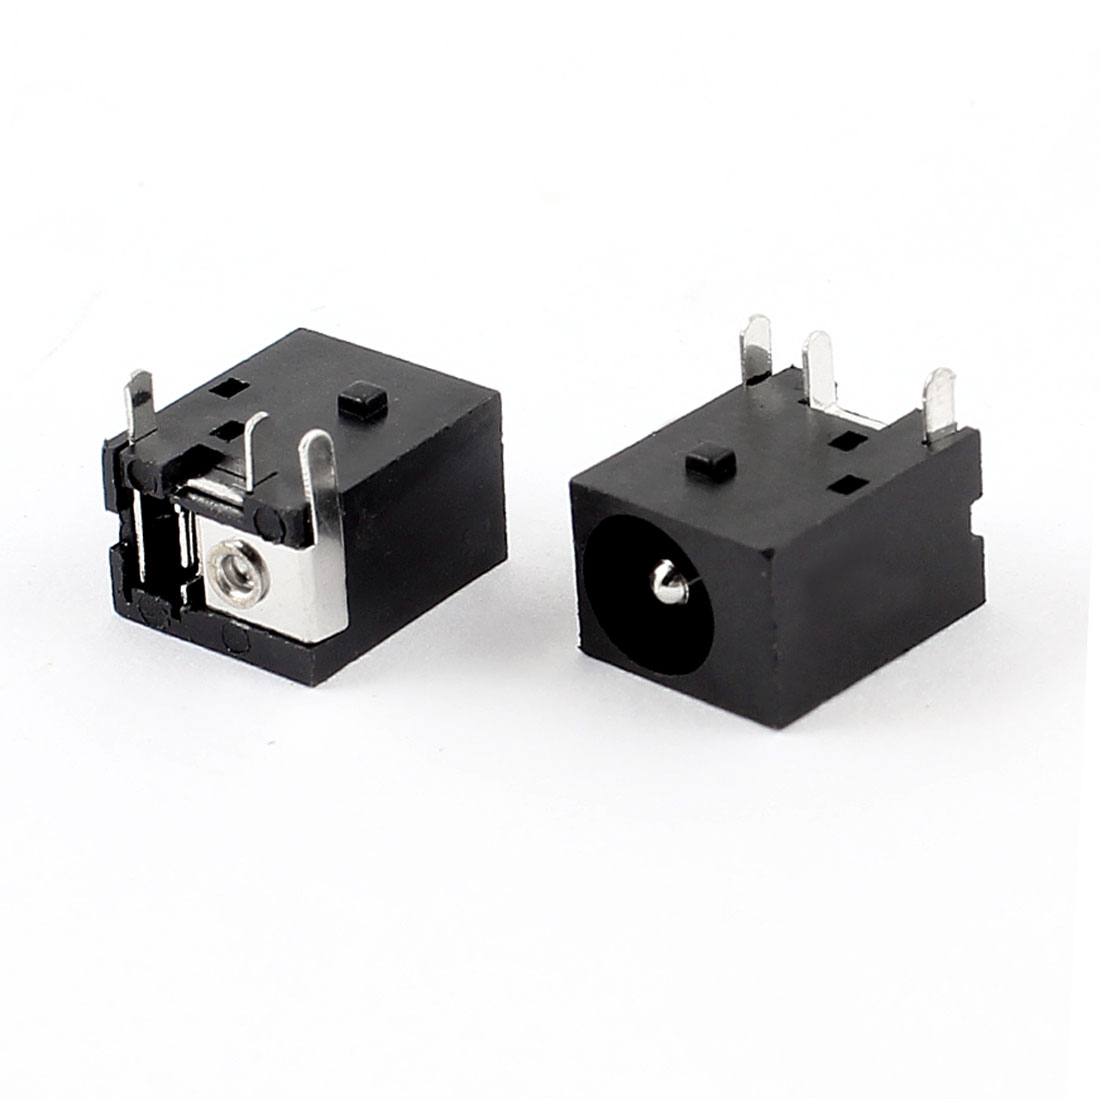 2 Pcs 3 Pin 2.1 x 5.5mm Stereo Jacks Socket Audio Connectors PCB Mount